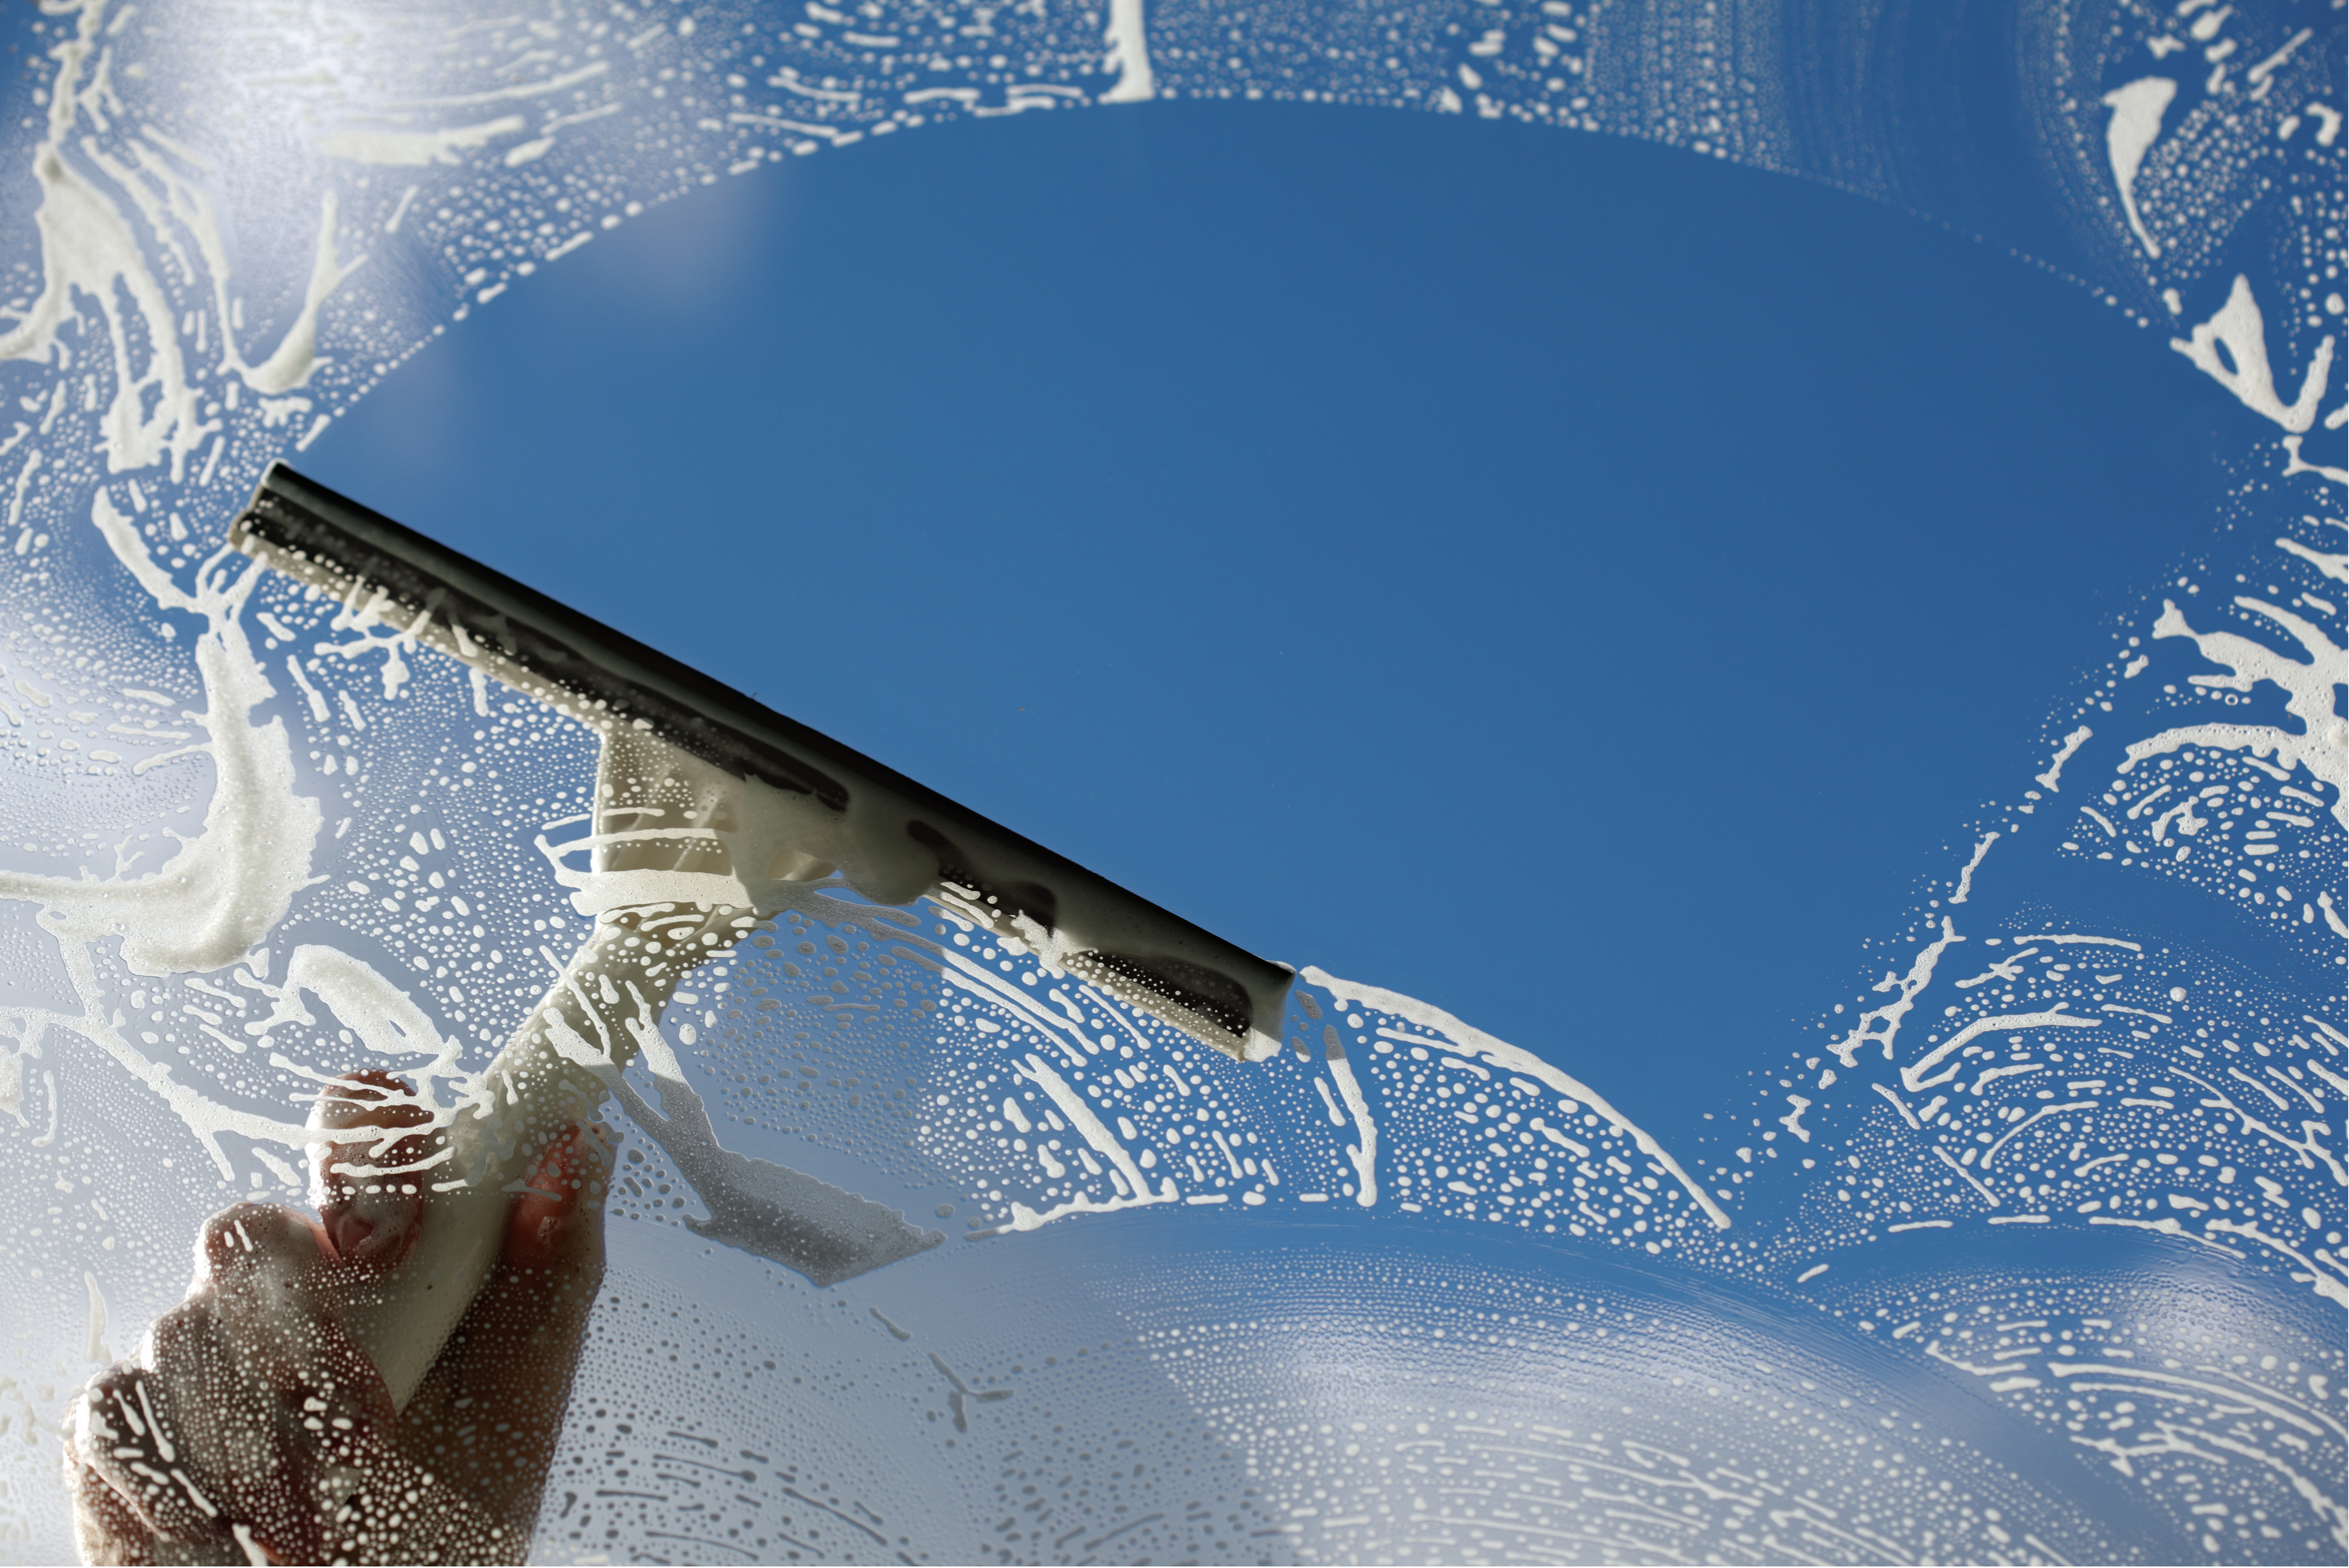 window washing | cleaning secrets | cleaning | window cleaning | clean | windows | cleaning tips | cleaning tricks | tips and tricks for cleaning